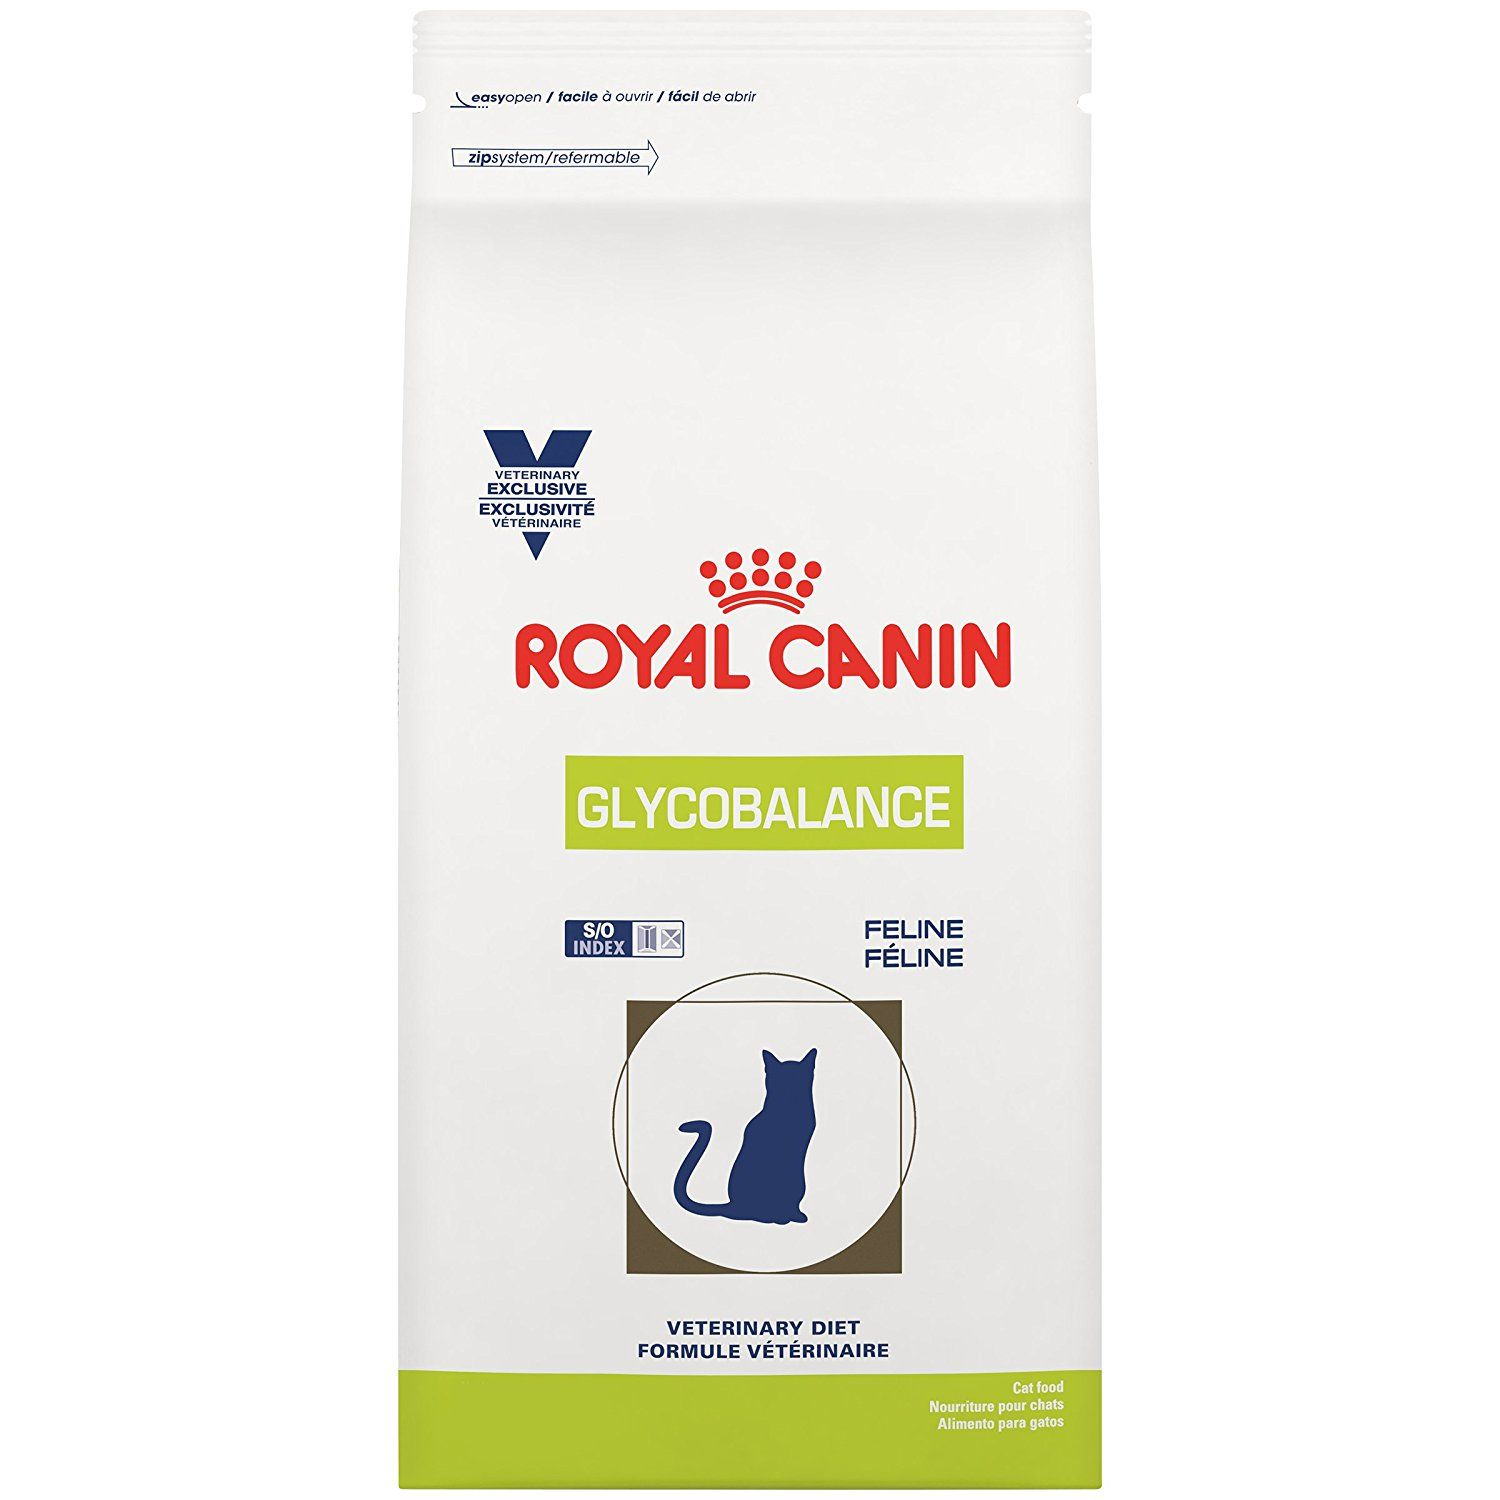 Royal Canin Feline Glycobalance Dry 4 4 Lb Cat Food More Info Could Be Found At The Image Url This Is An Affiliate Link Cat Food Dry Cat Food Royal Canin